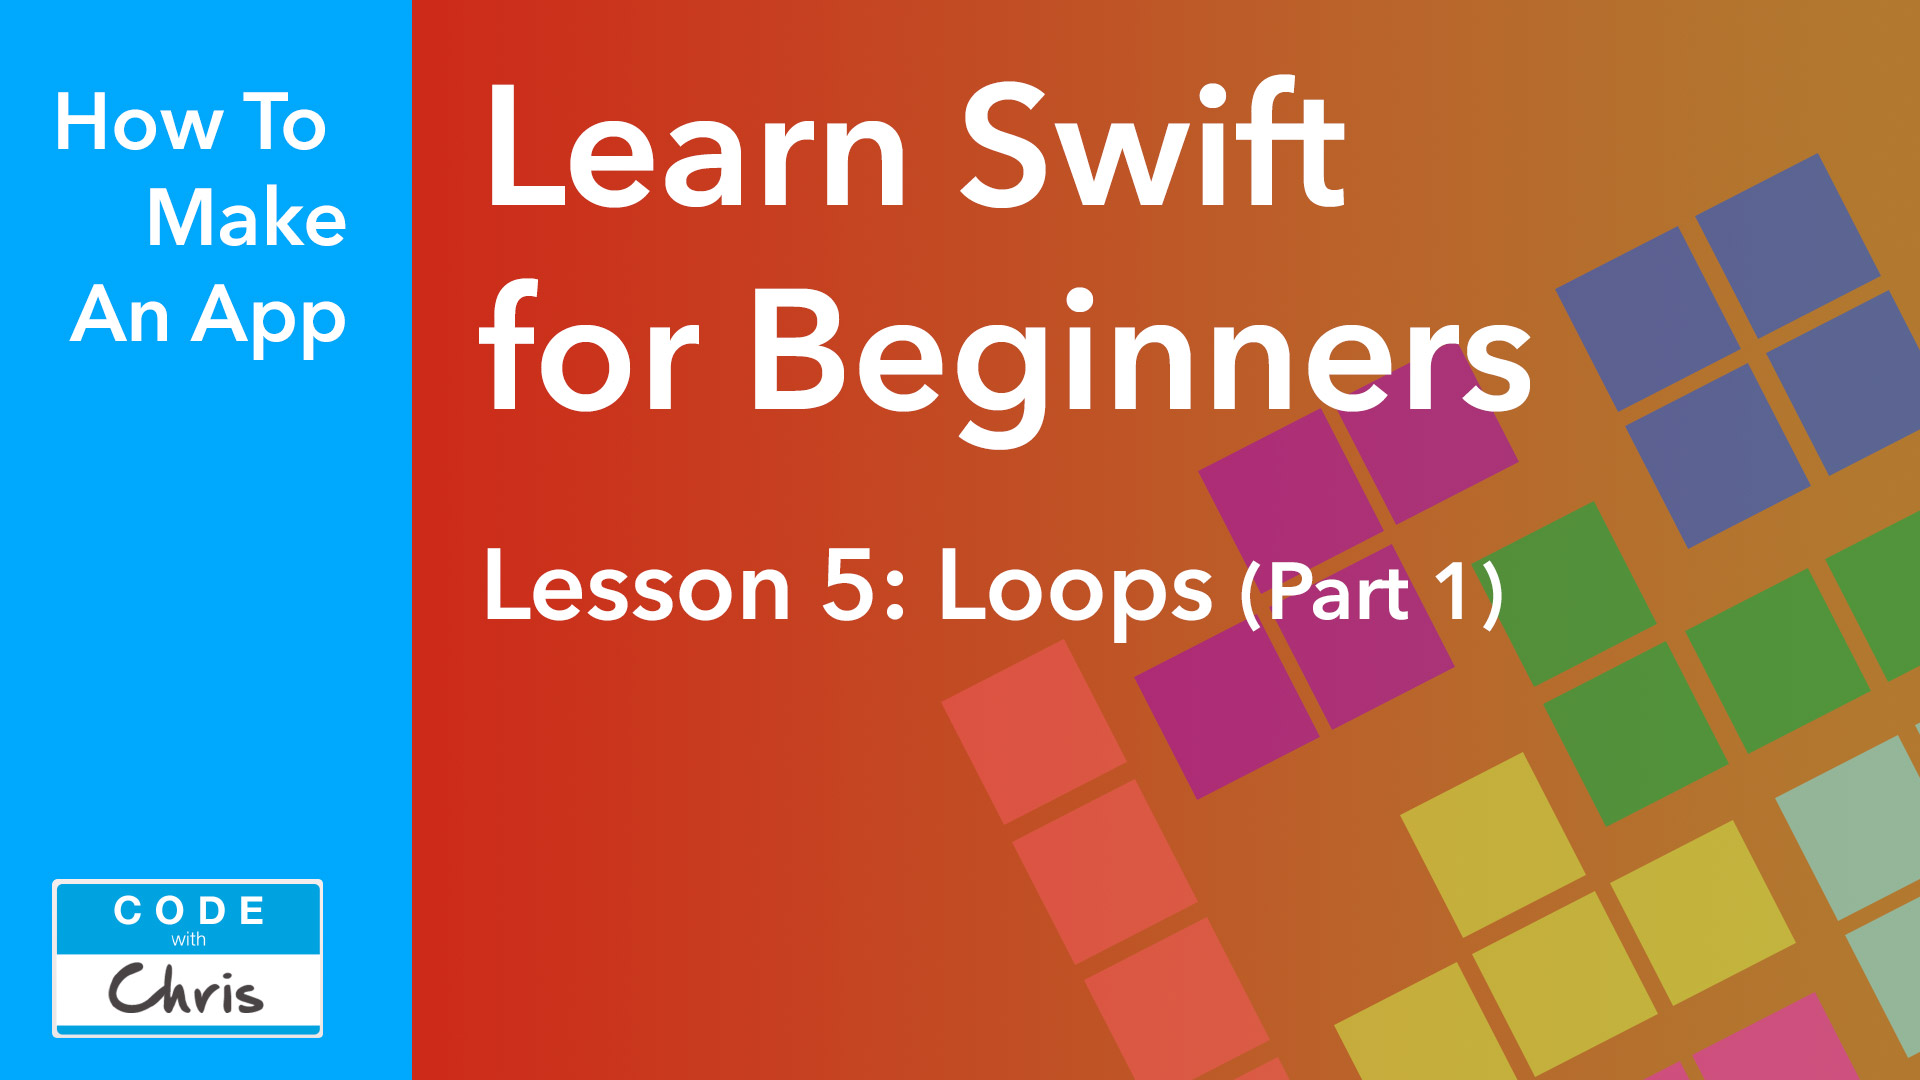 Lesson 5 Loops